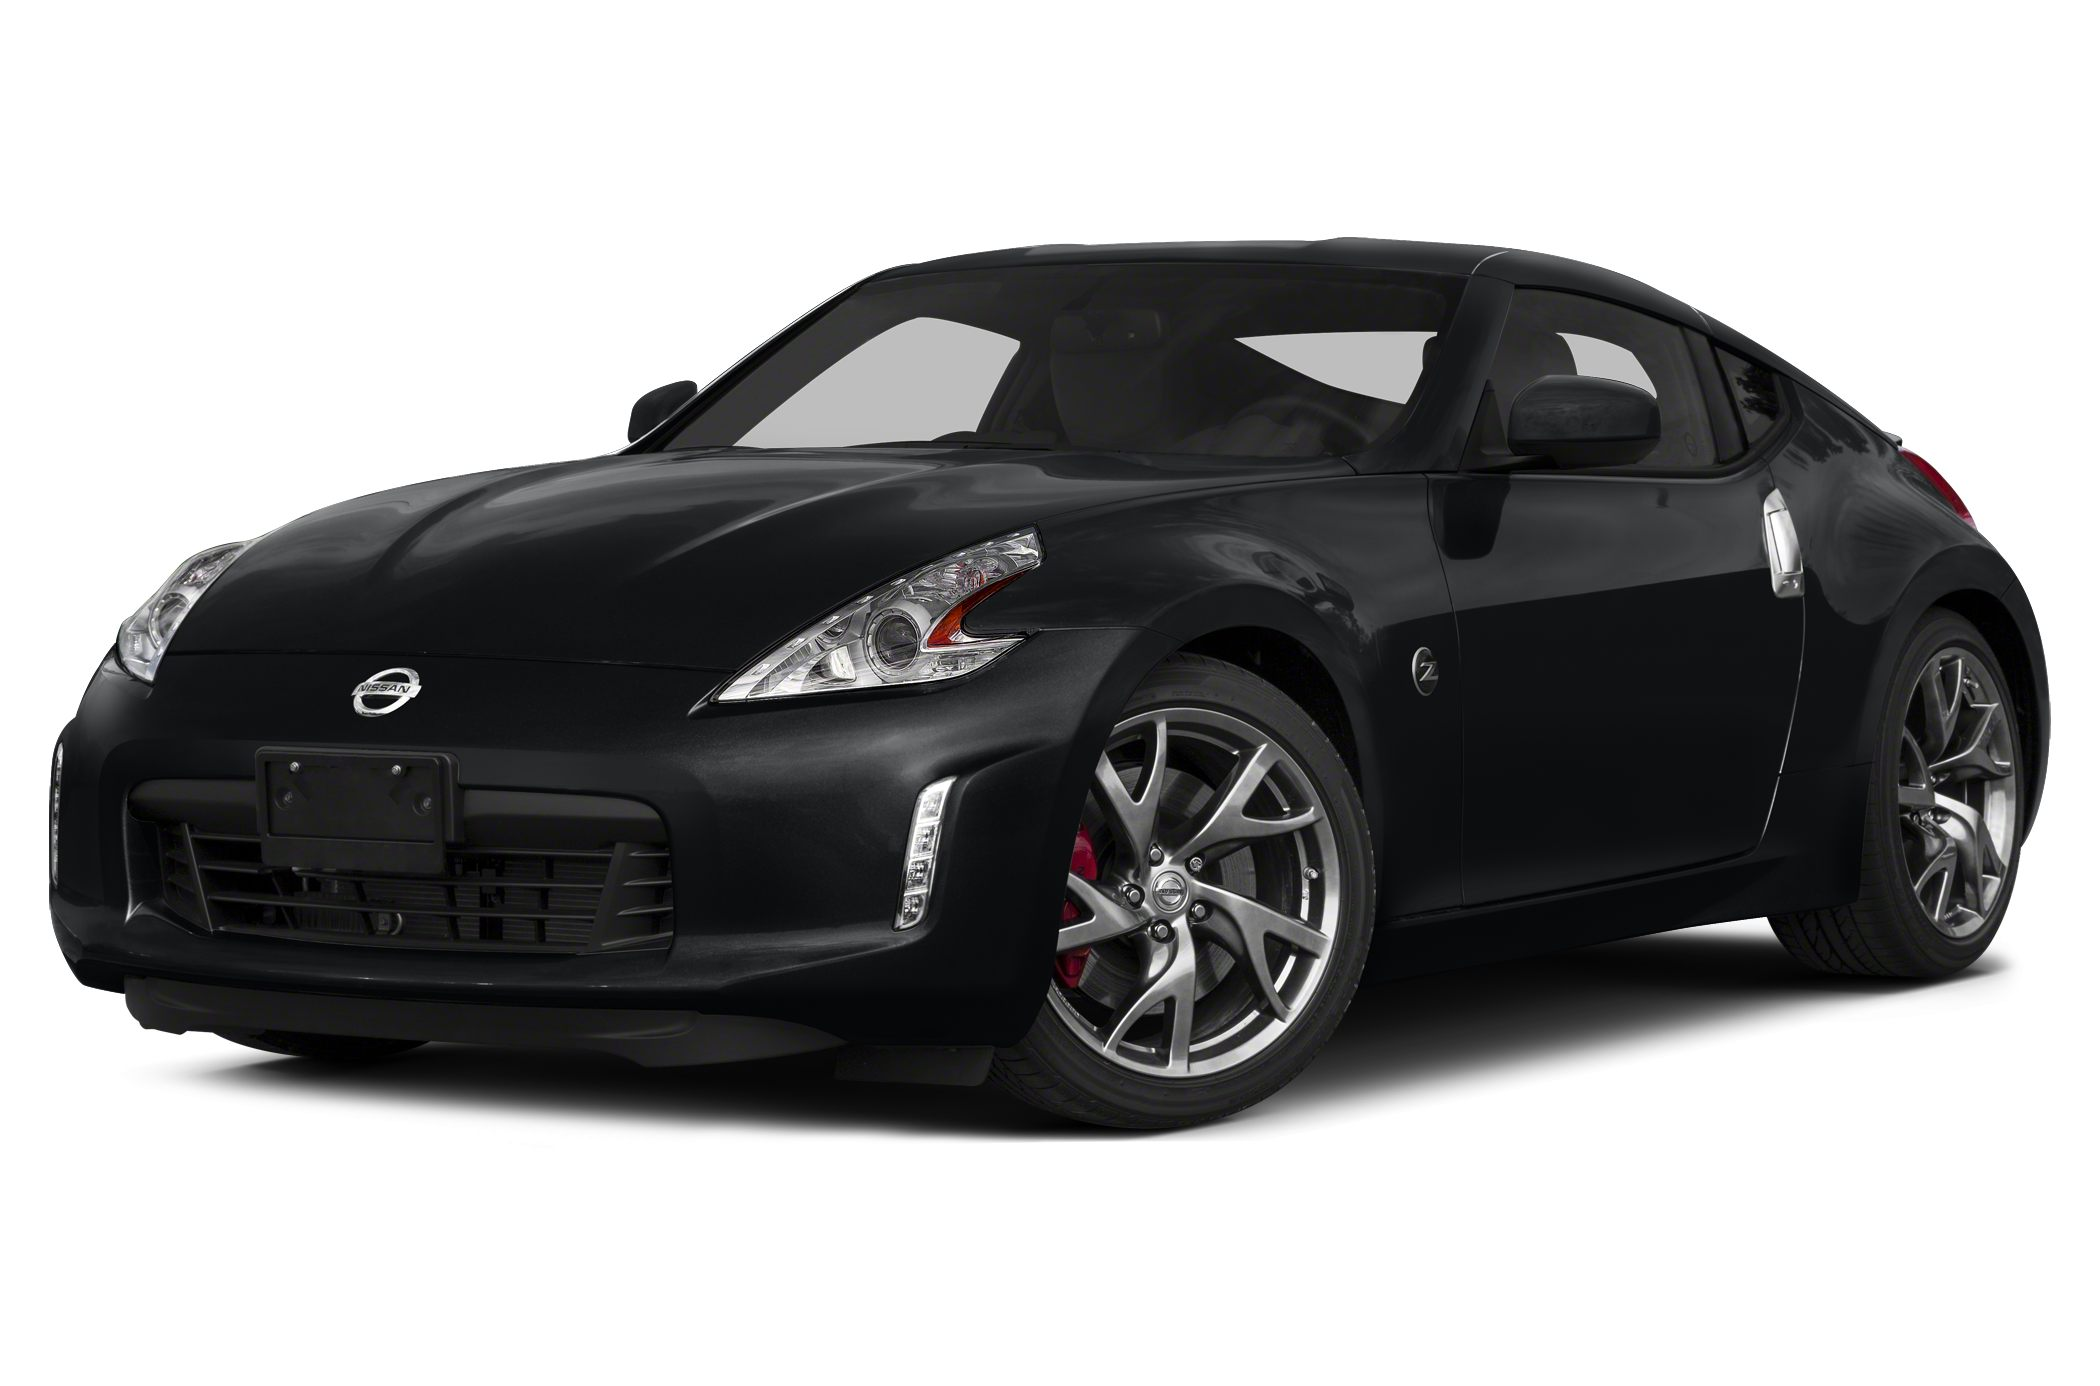 2013 Nissan 370Z Touring Coupe for sale in Marietta for $30,871 with 3,113 miles.